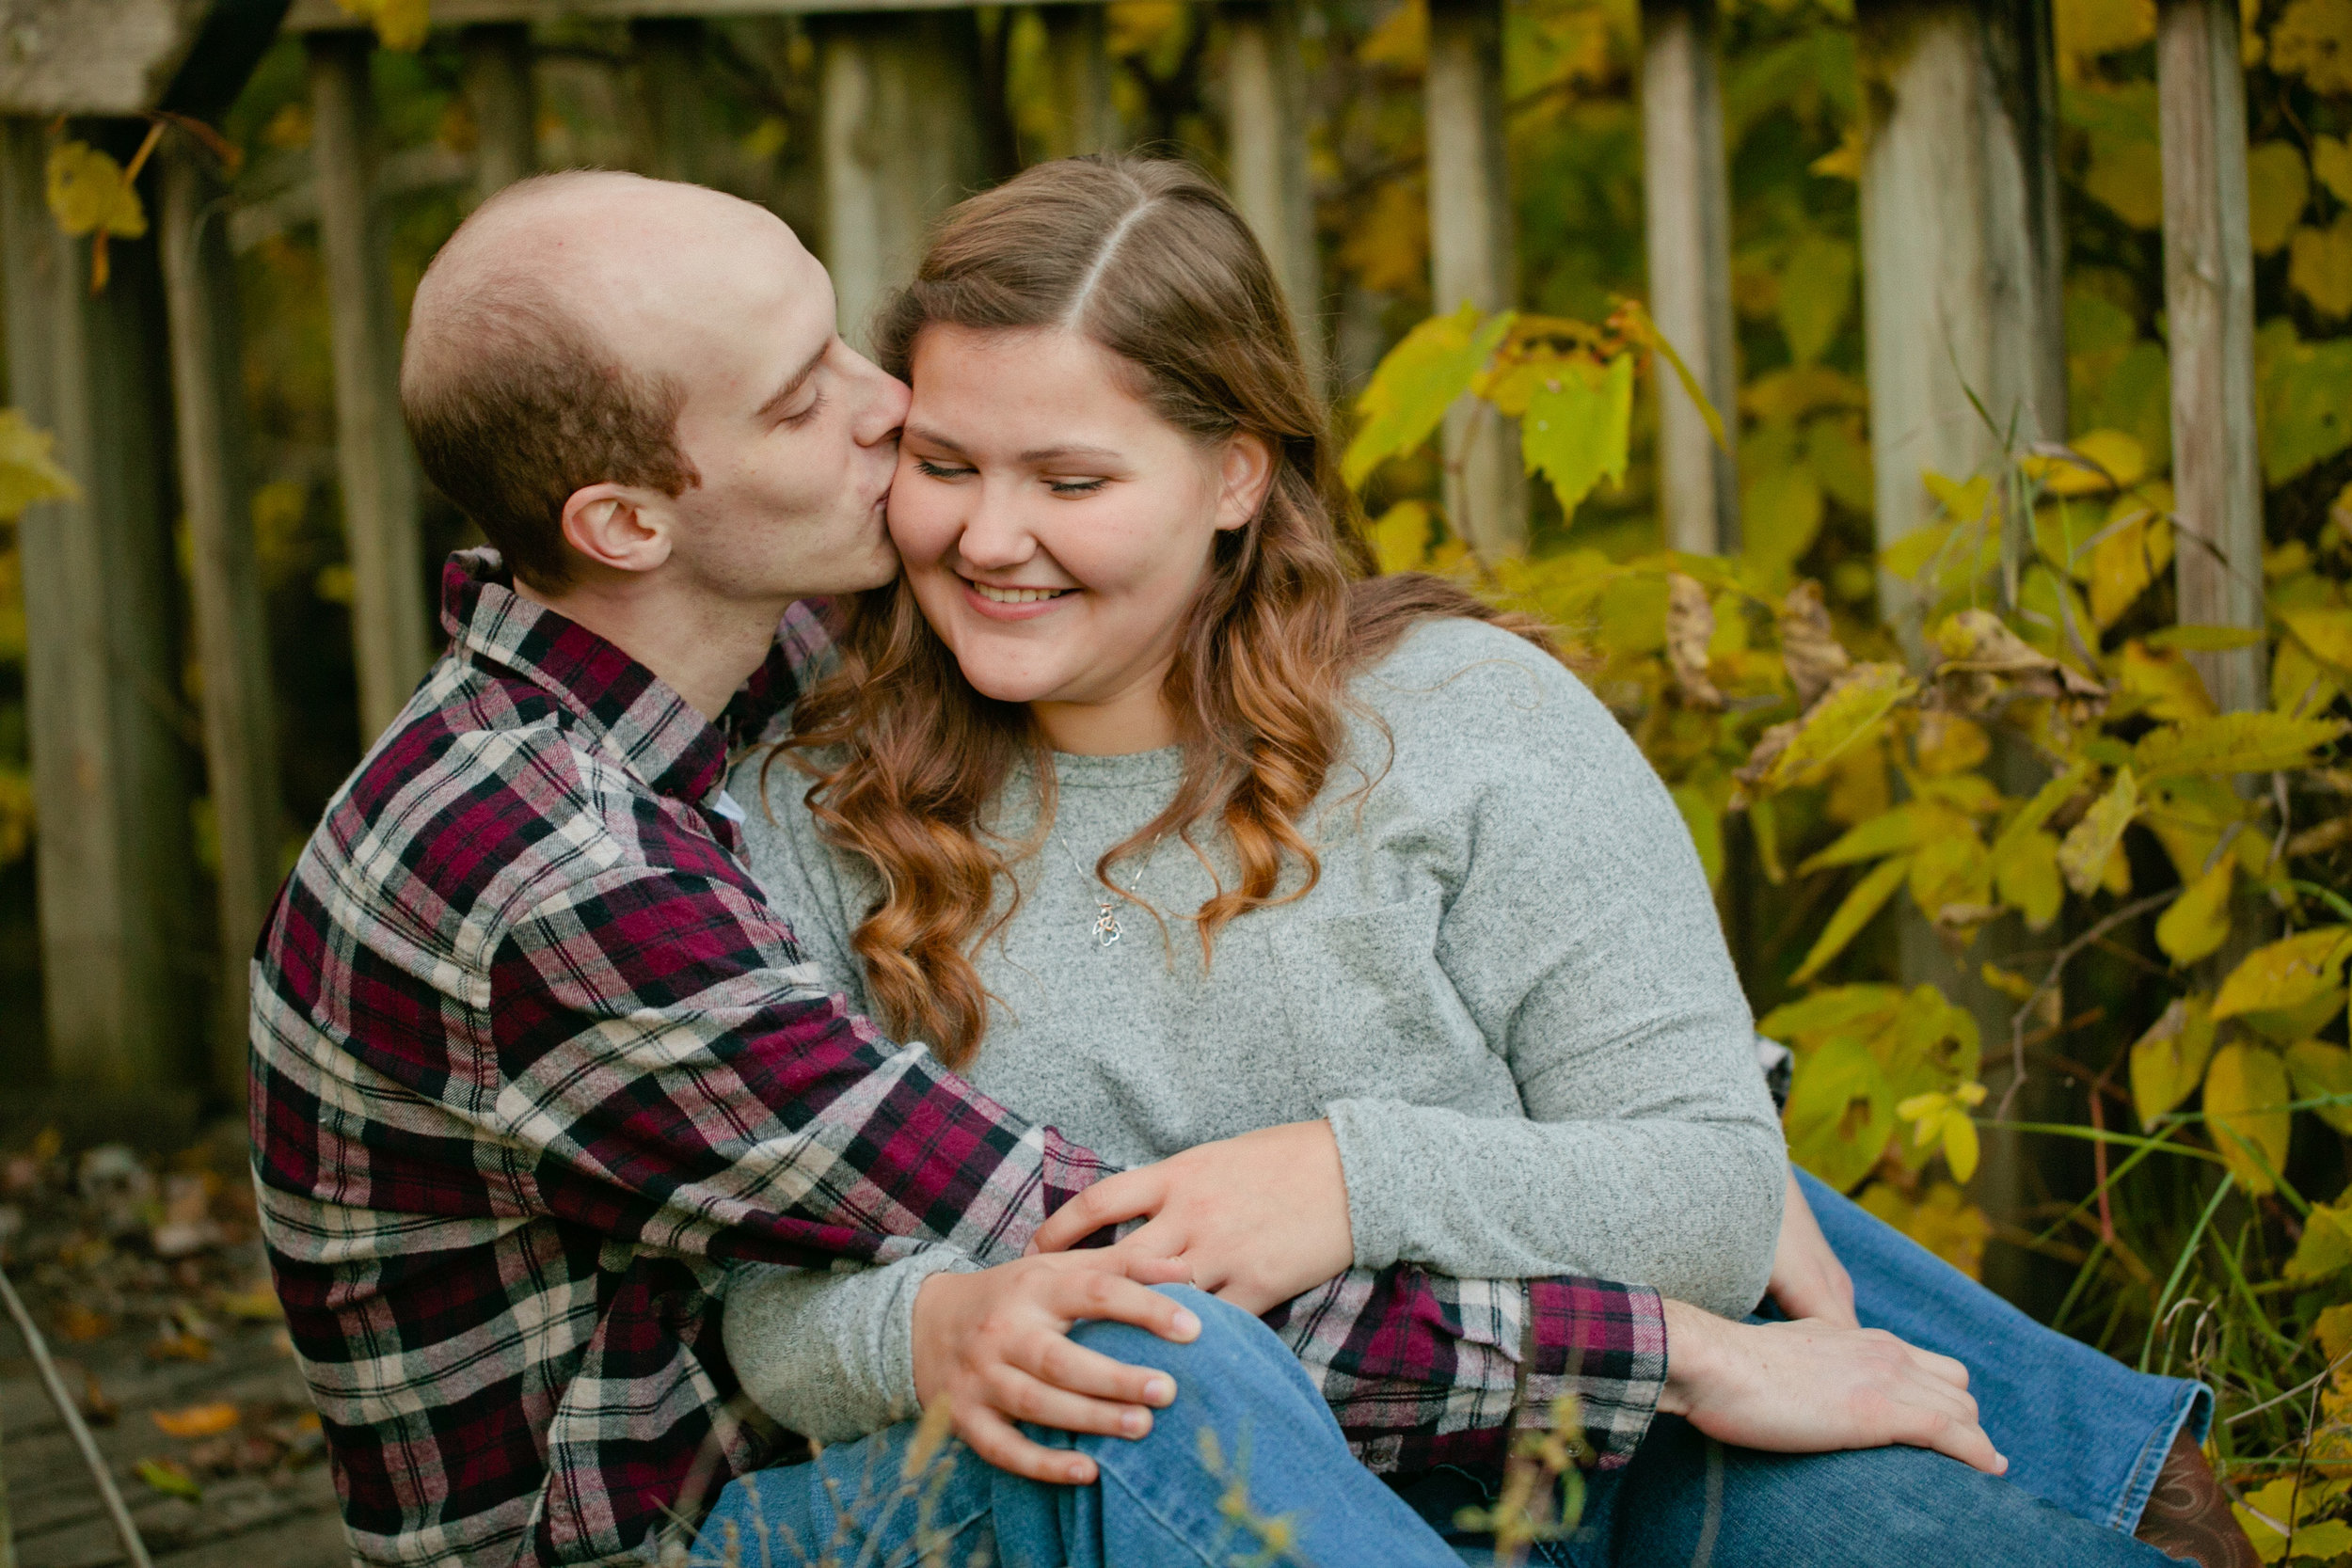 photographing couples in the fall good skin tone in editing